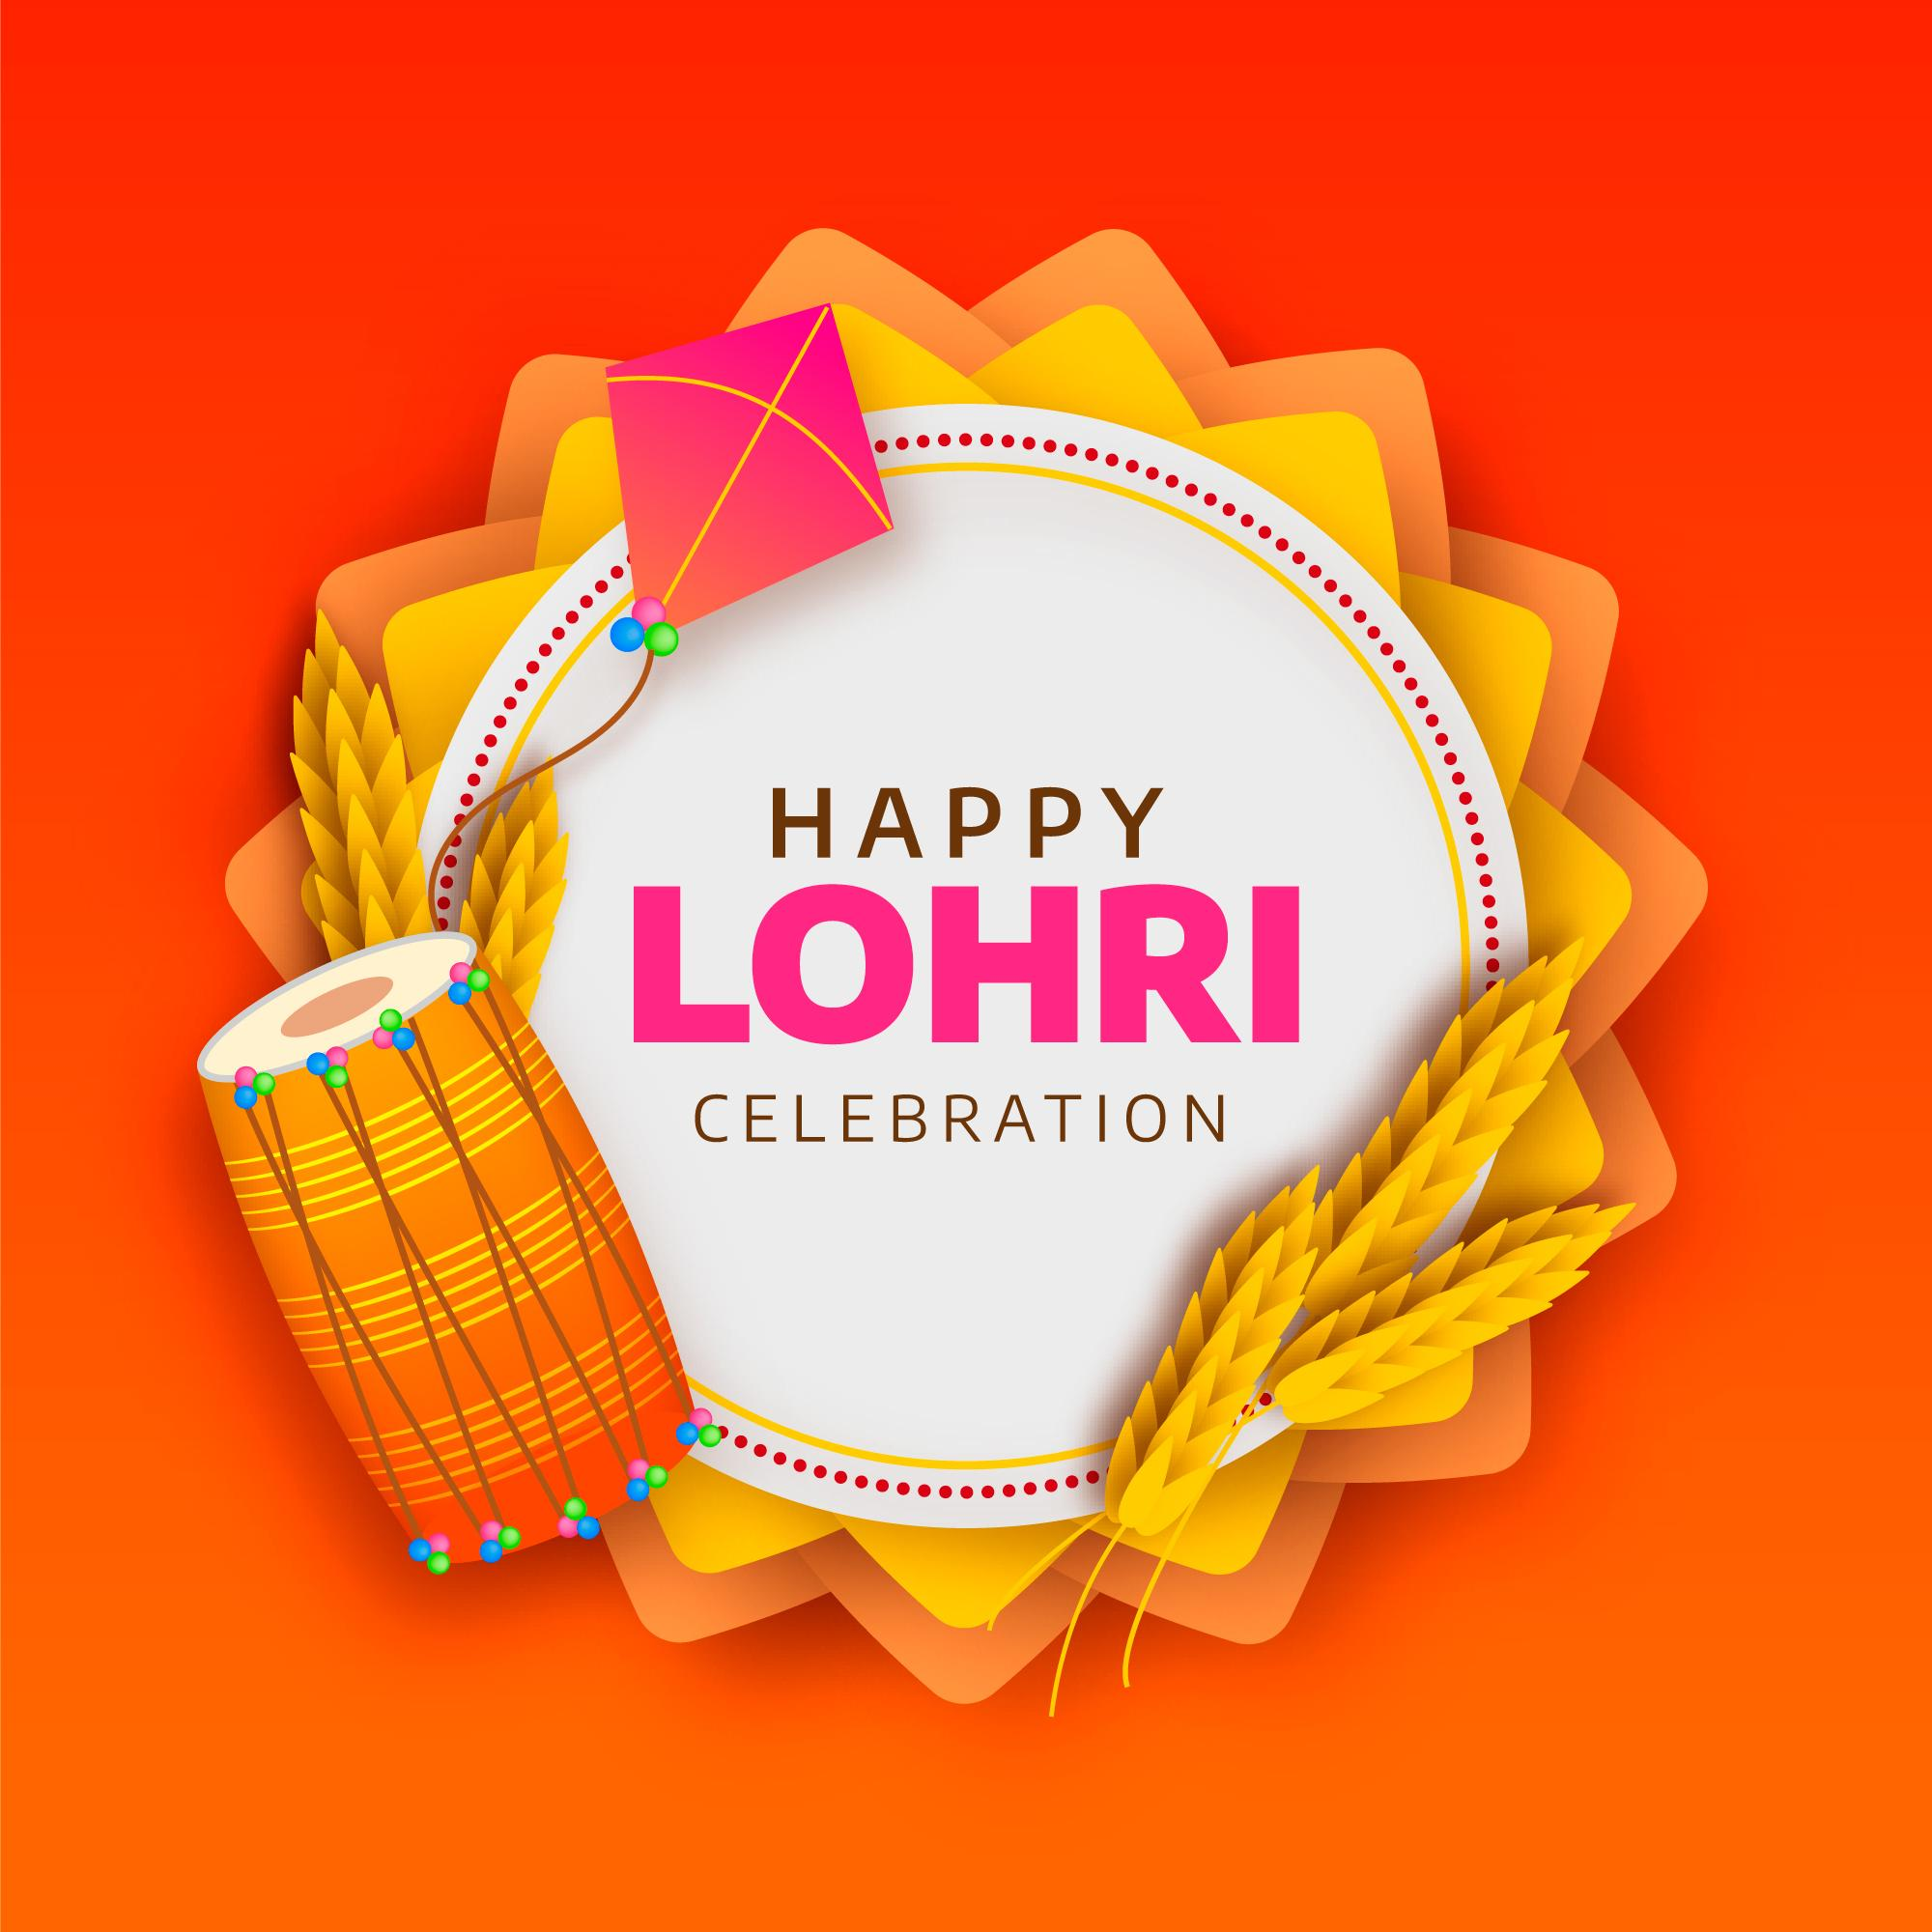 Happy Lohri Celebration Background With kite and Dhol